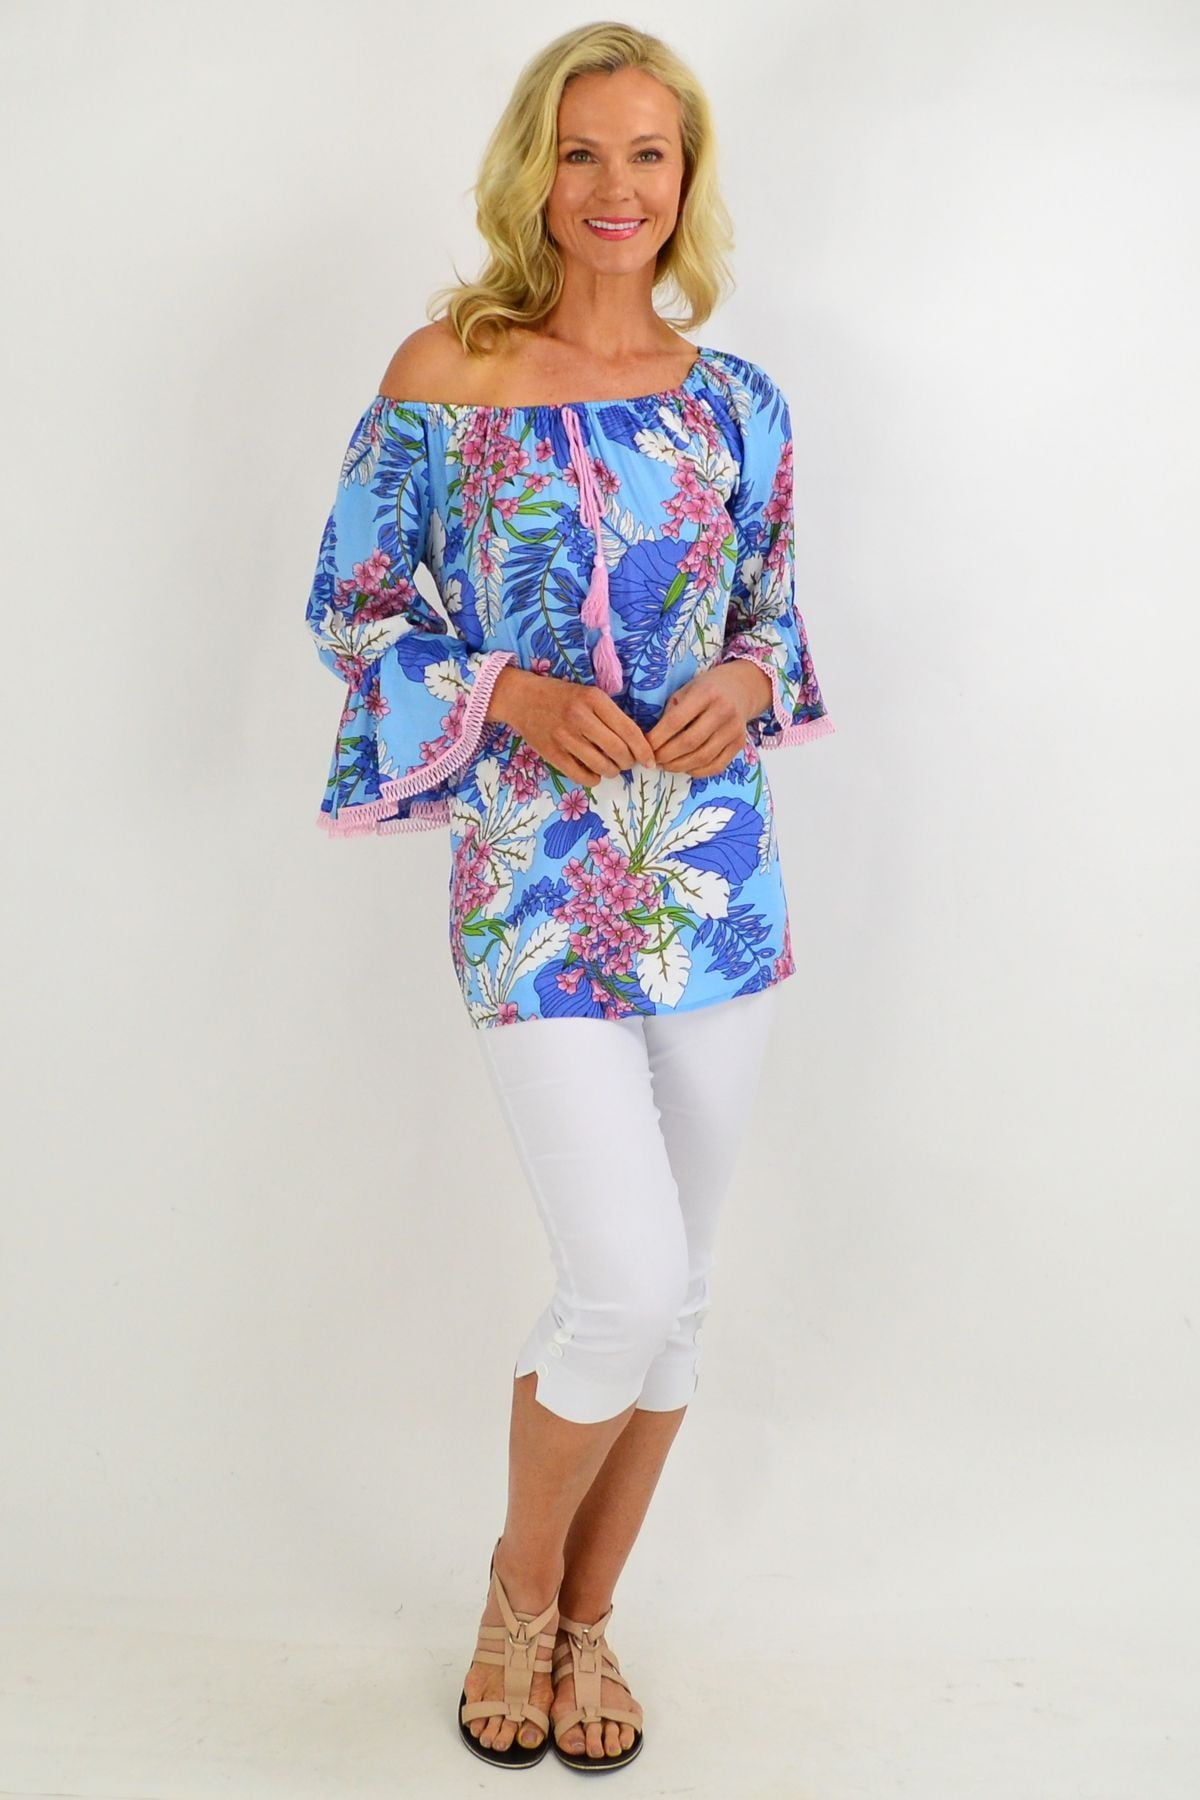 Sky Blue Tropical Tassel Off shoulder Tunic Top | I Love Tunics | Tunic Tops | Tunic | Tunic Dresses  | womens clothing online